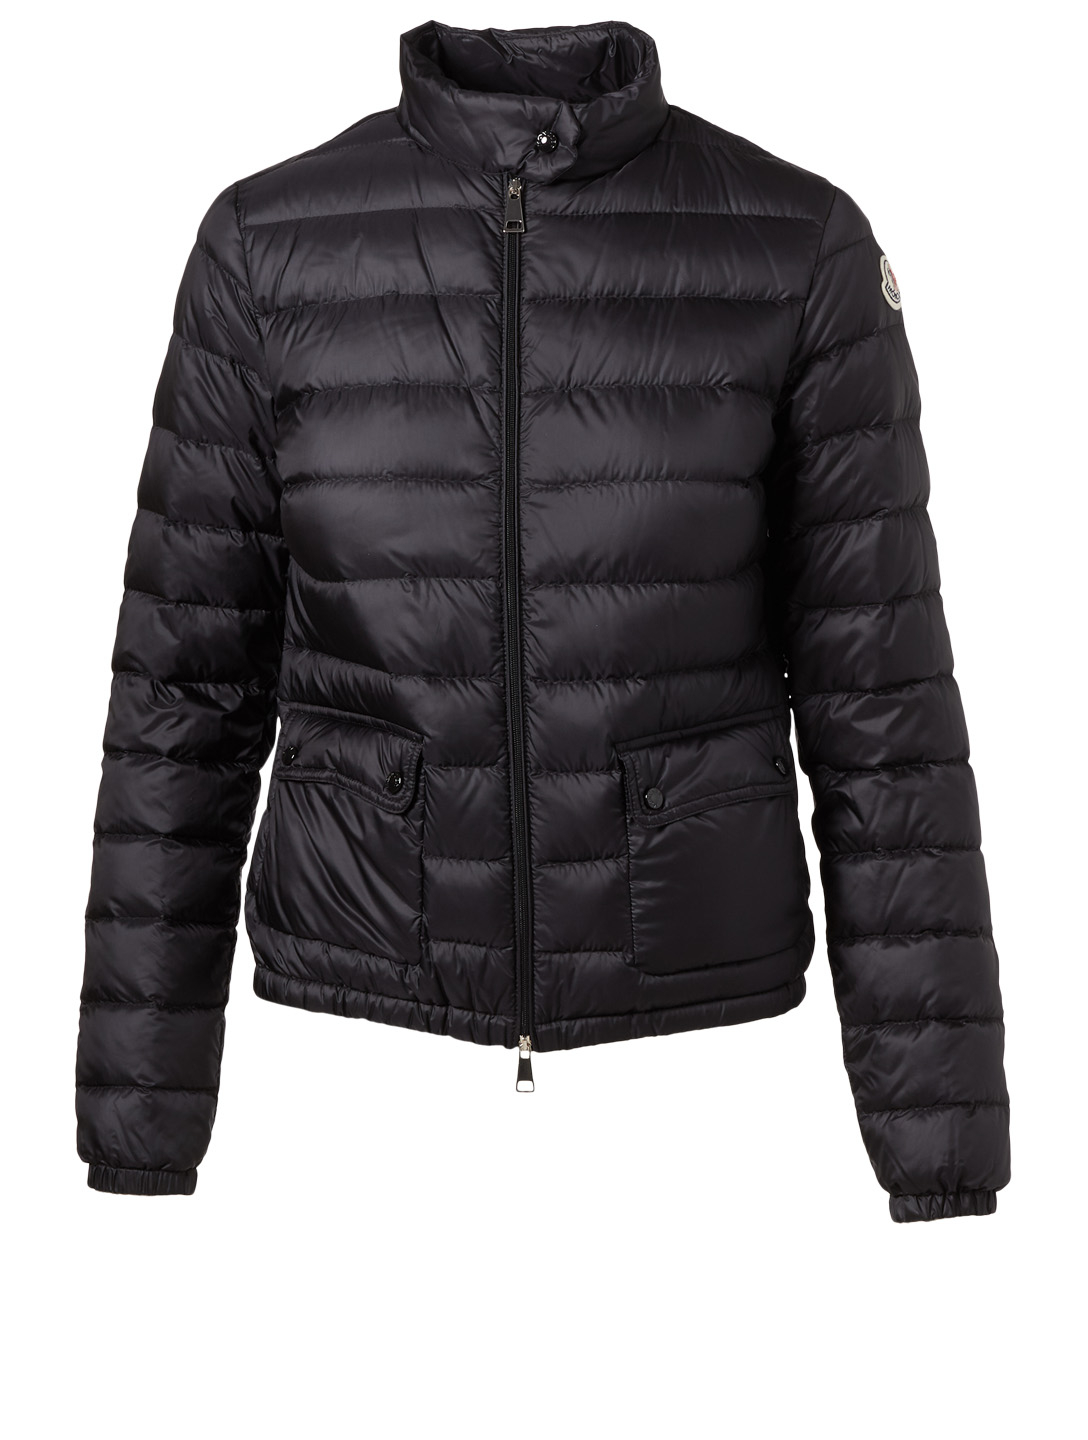 MONCLER Lans Down Puffer Jacket Women's Black